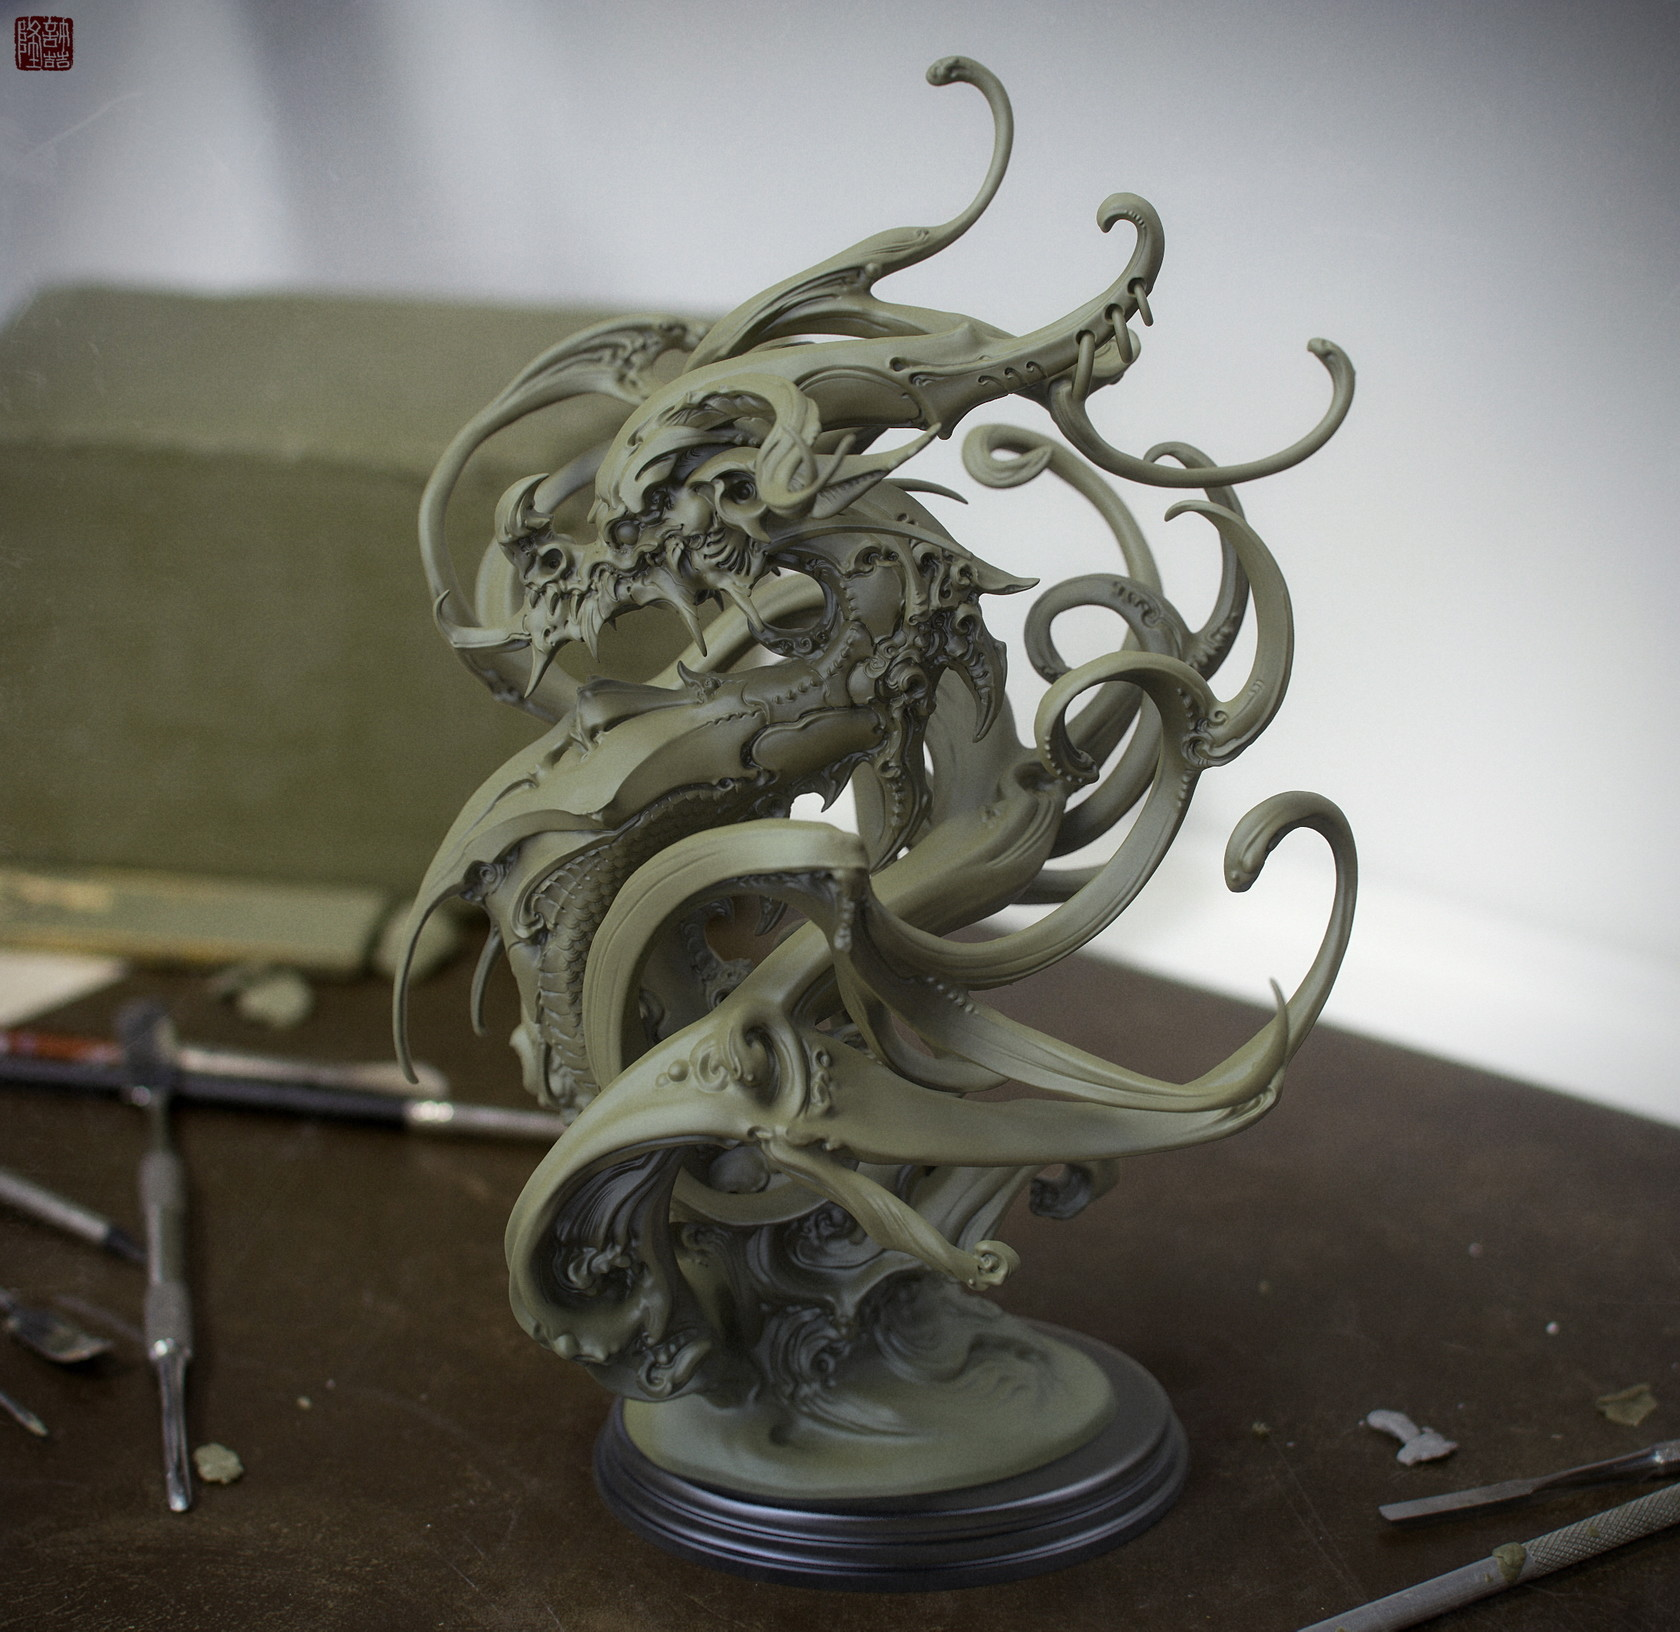 Zhelong xu keyshot render03 websize